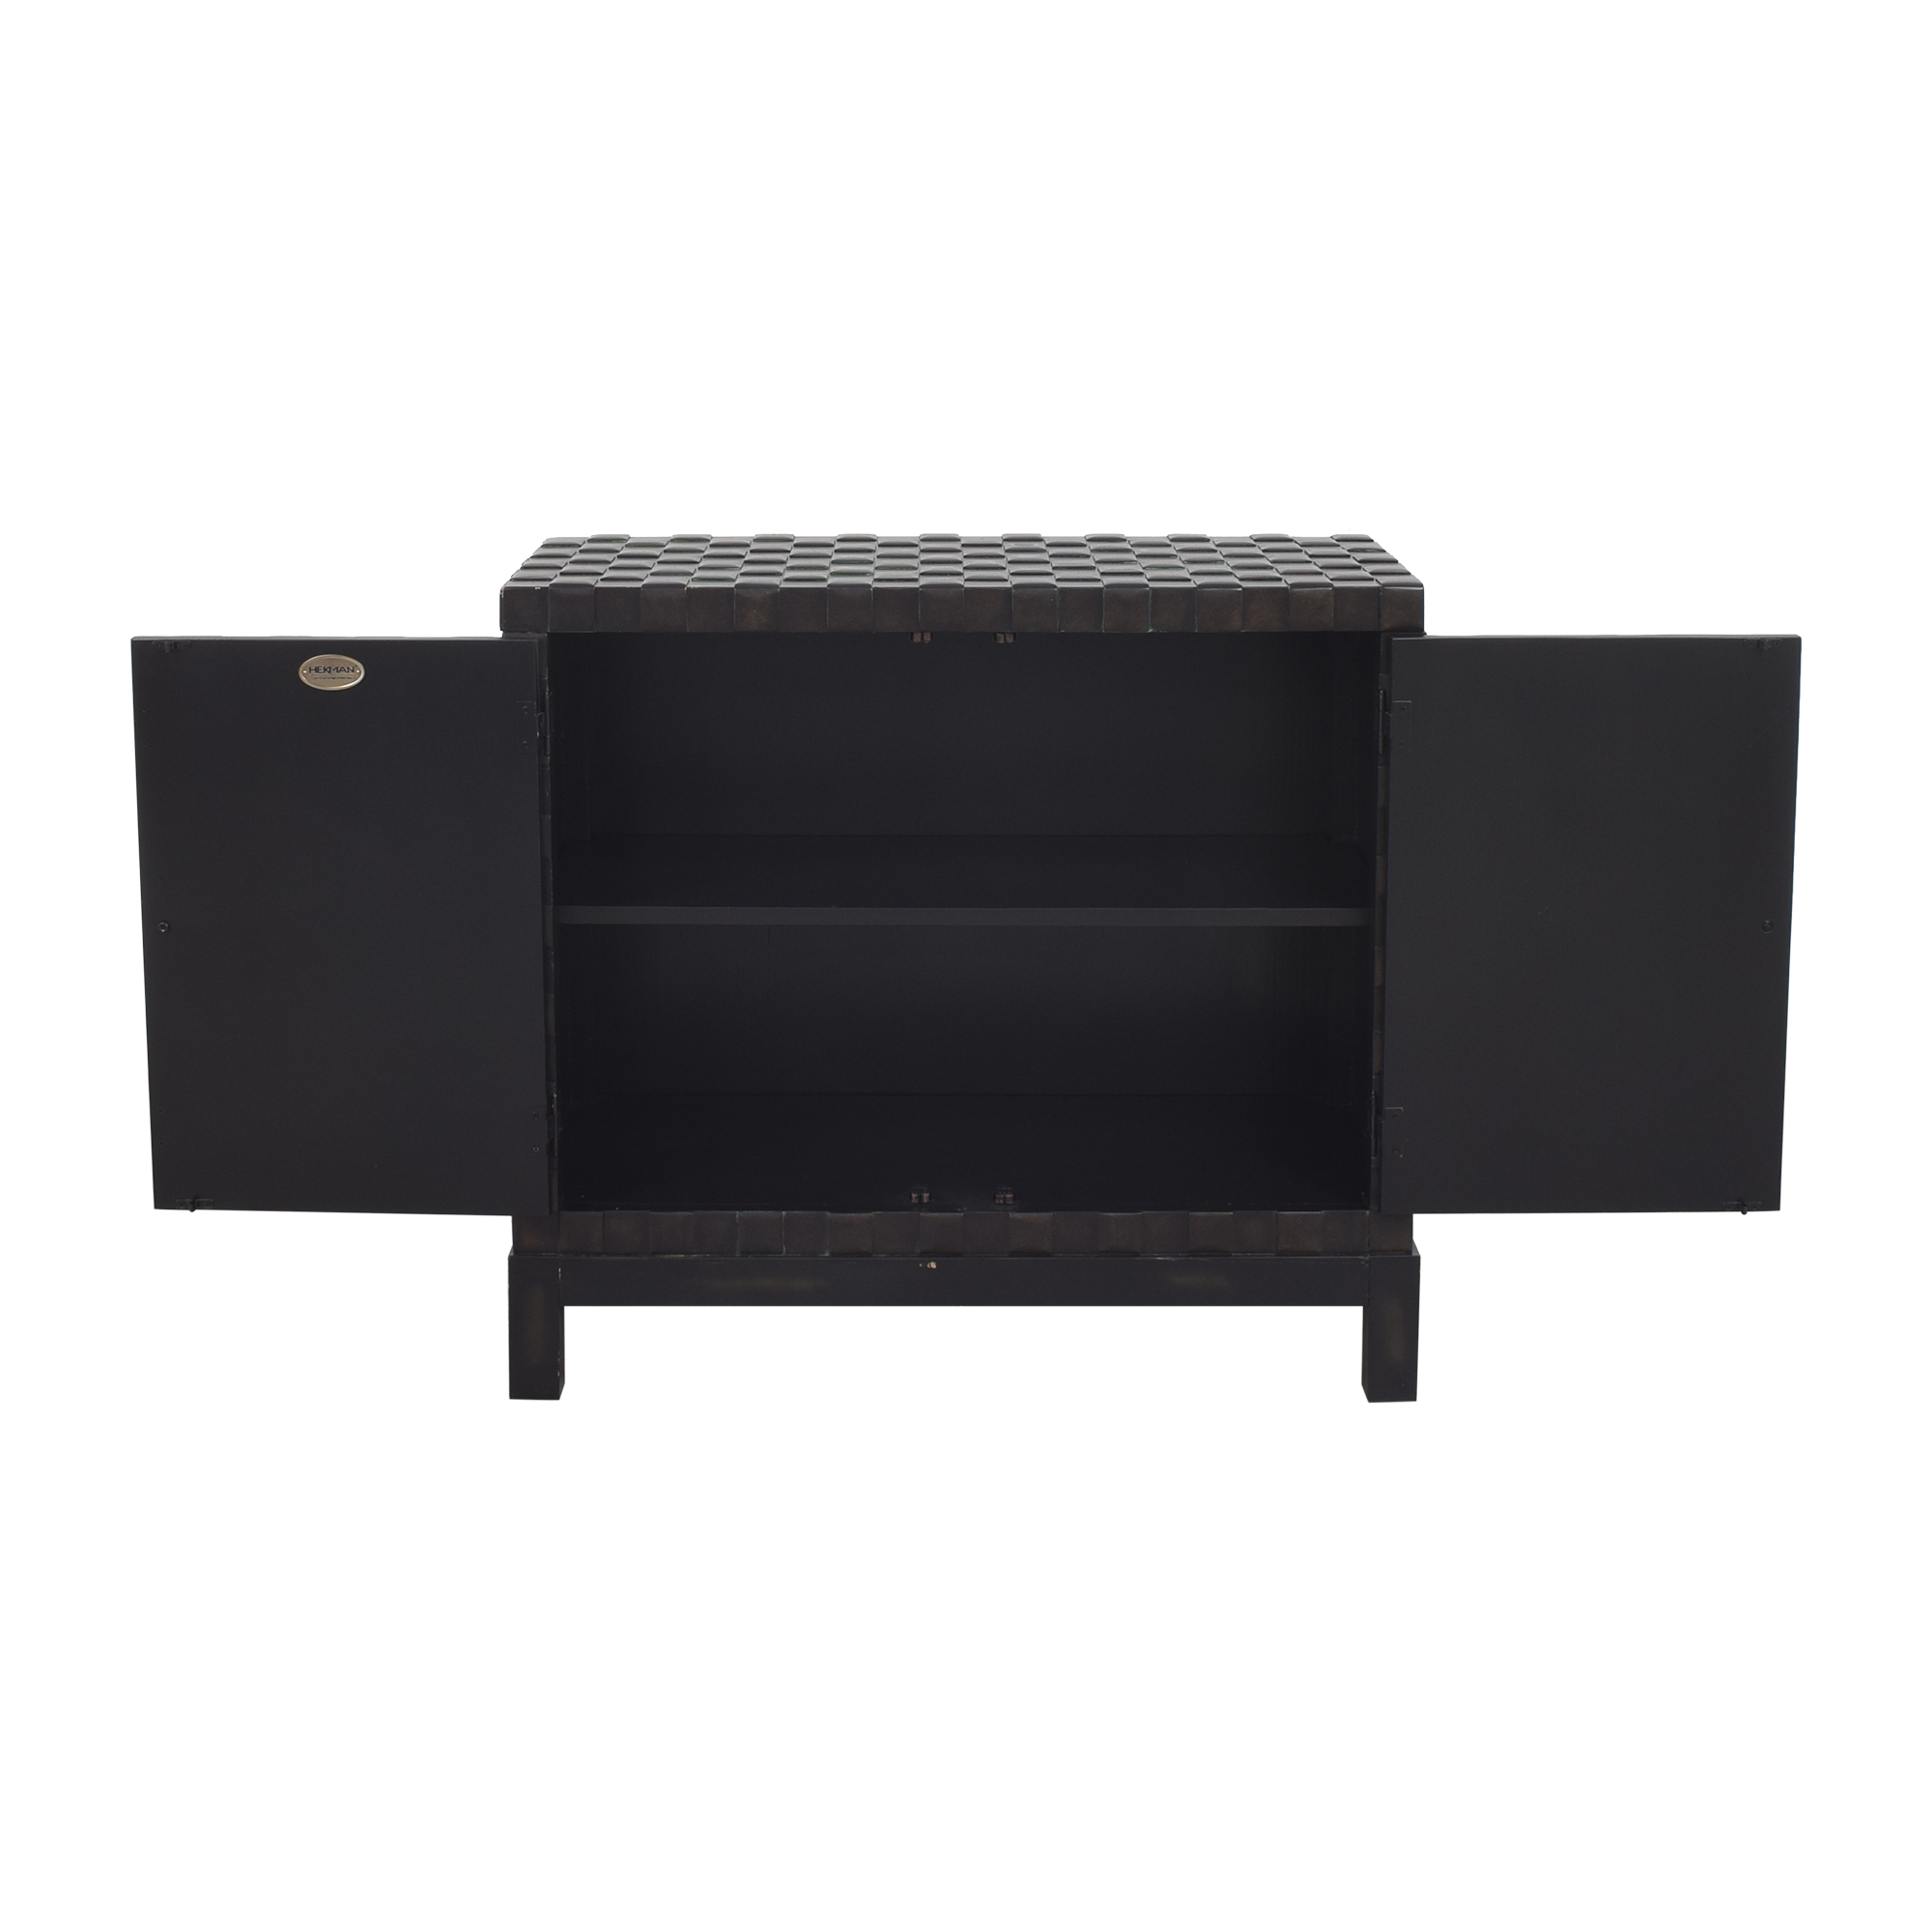 Hekman Furniture Hekman Furniture Woven Hall Chest dimensions